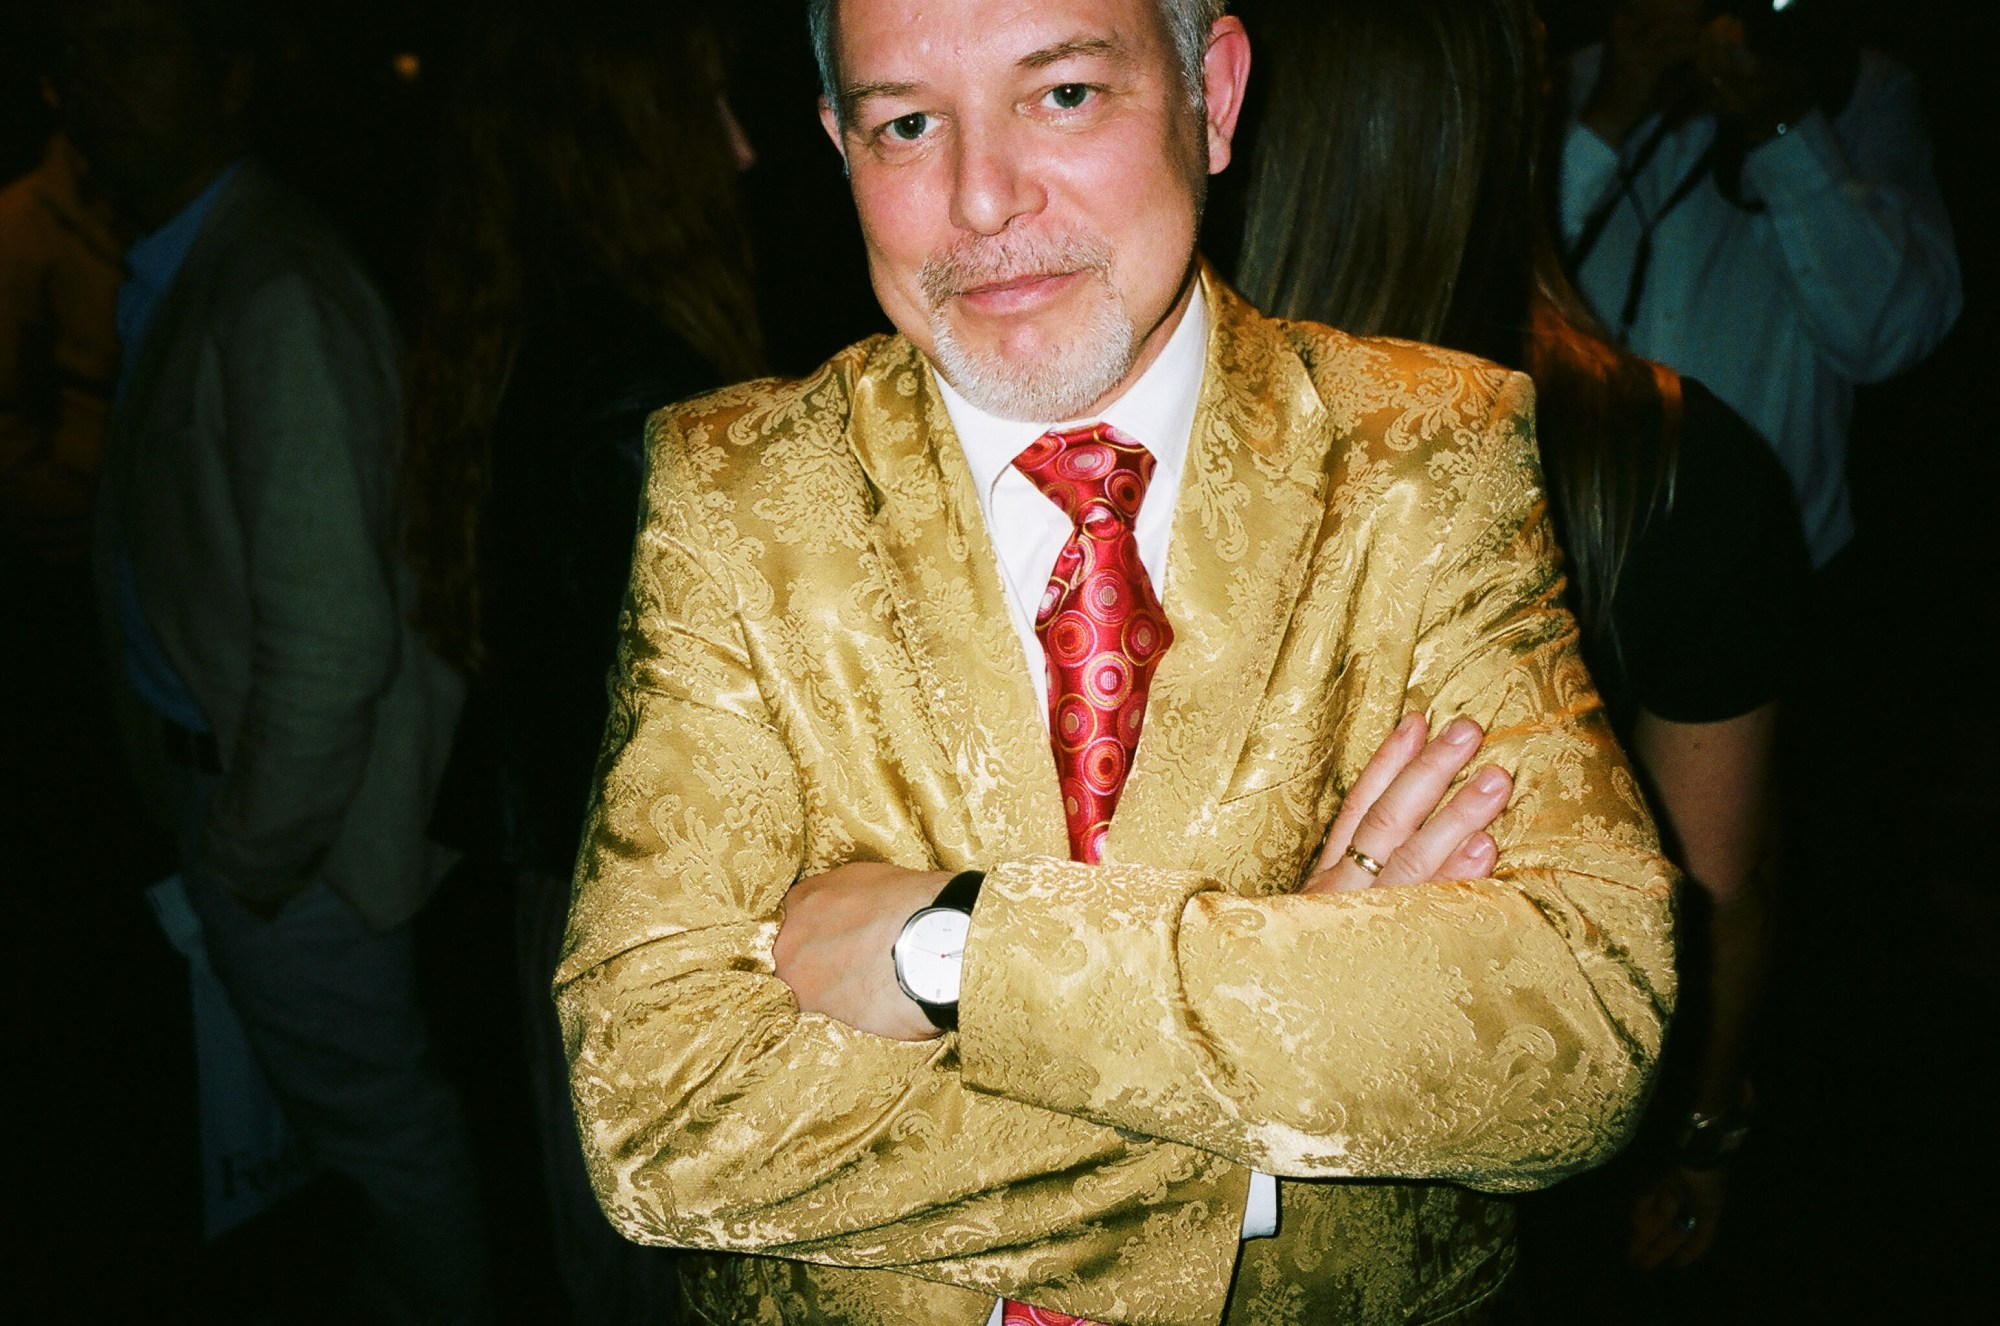 suits gold red tie